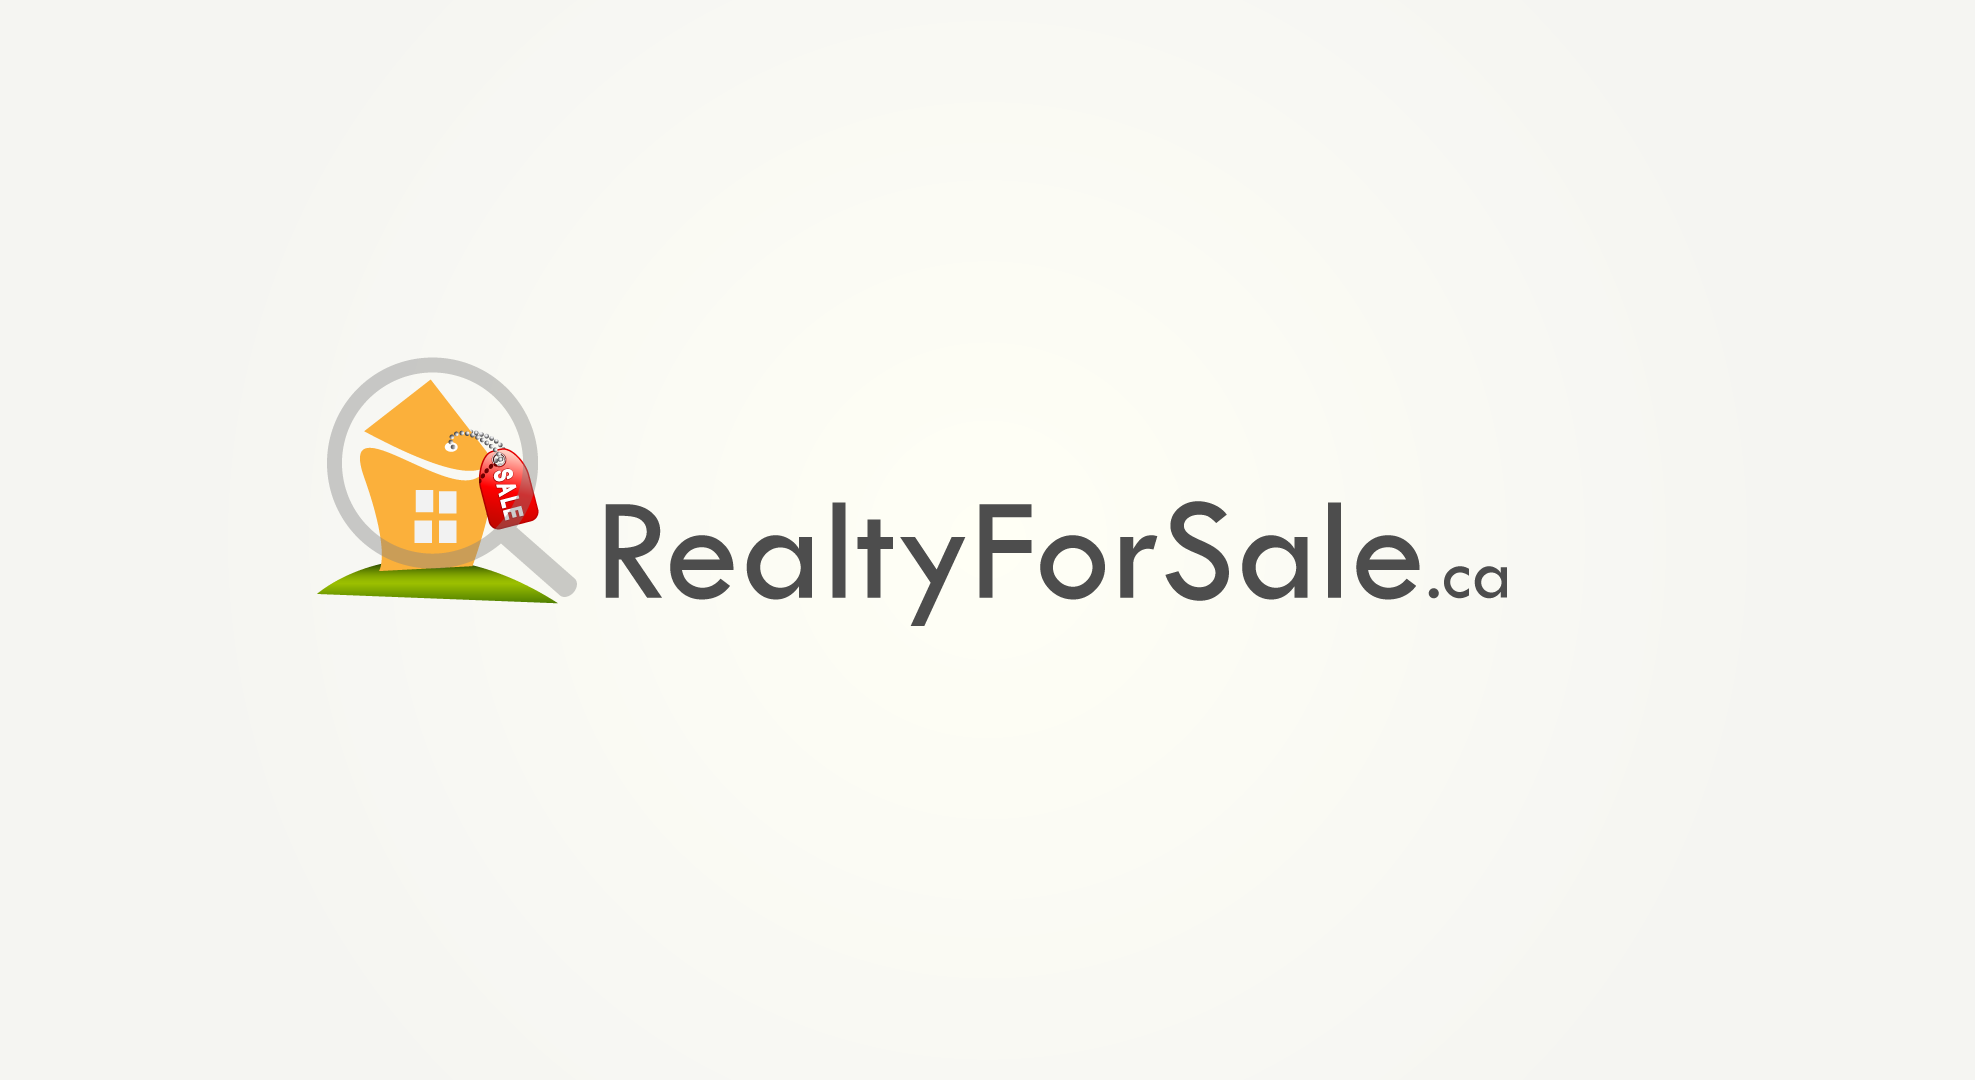 Logo Design by Shekath Ali - Entry No. 82 in the Logo Design Contest Inspiring Logo Design for RealtyForSale.ca.